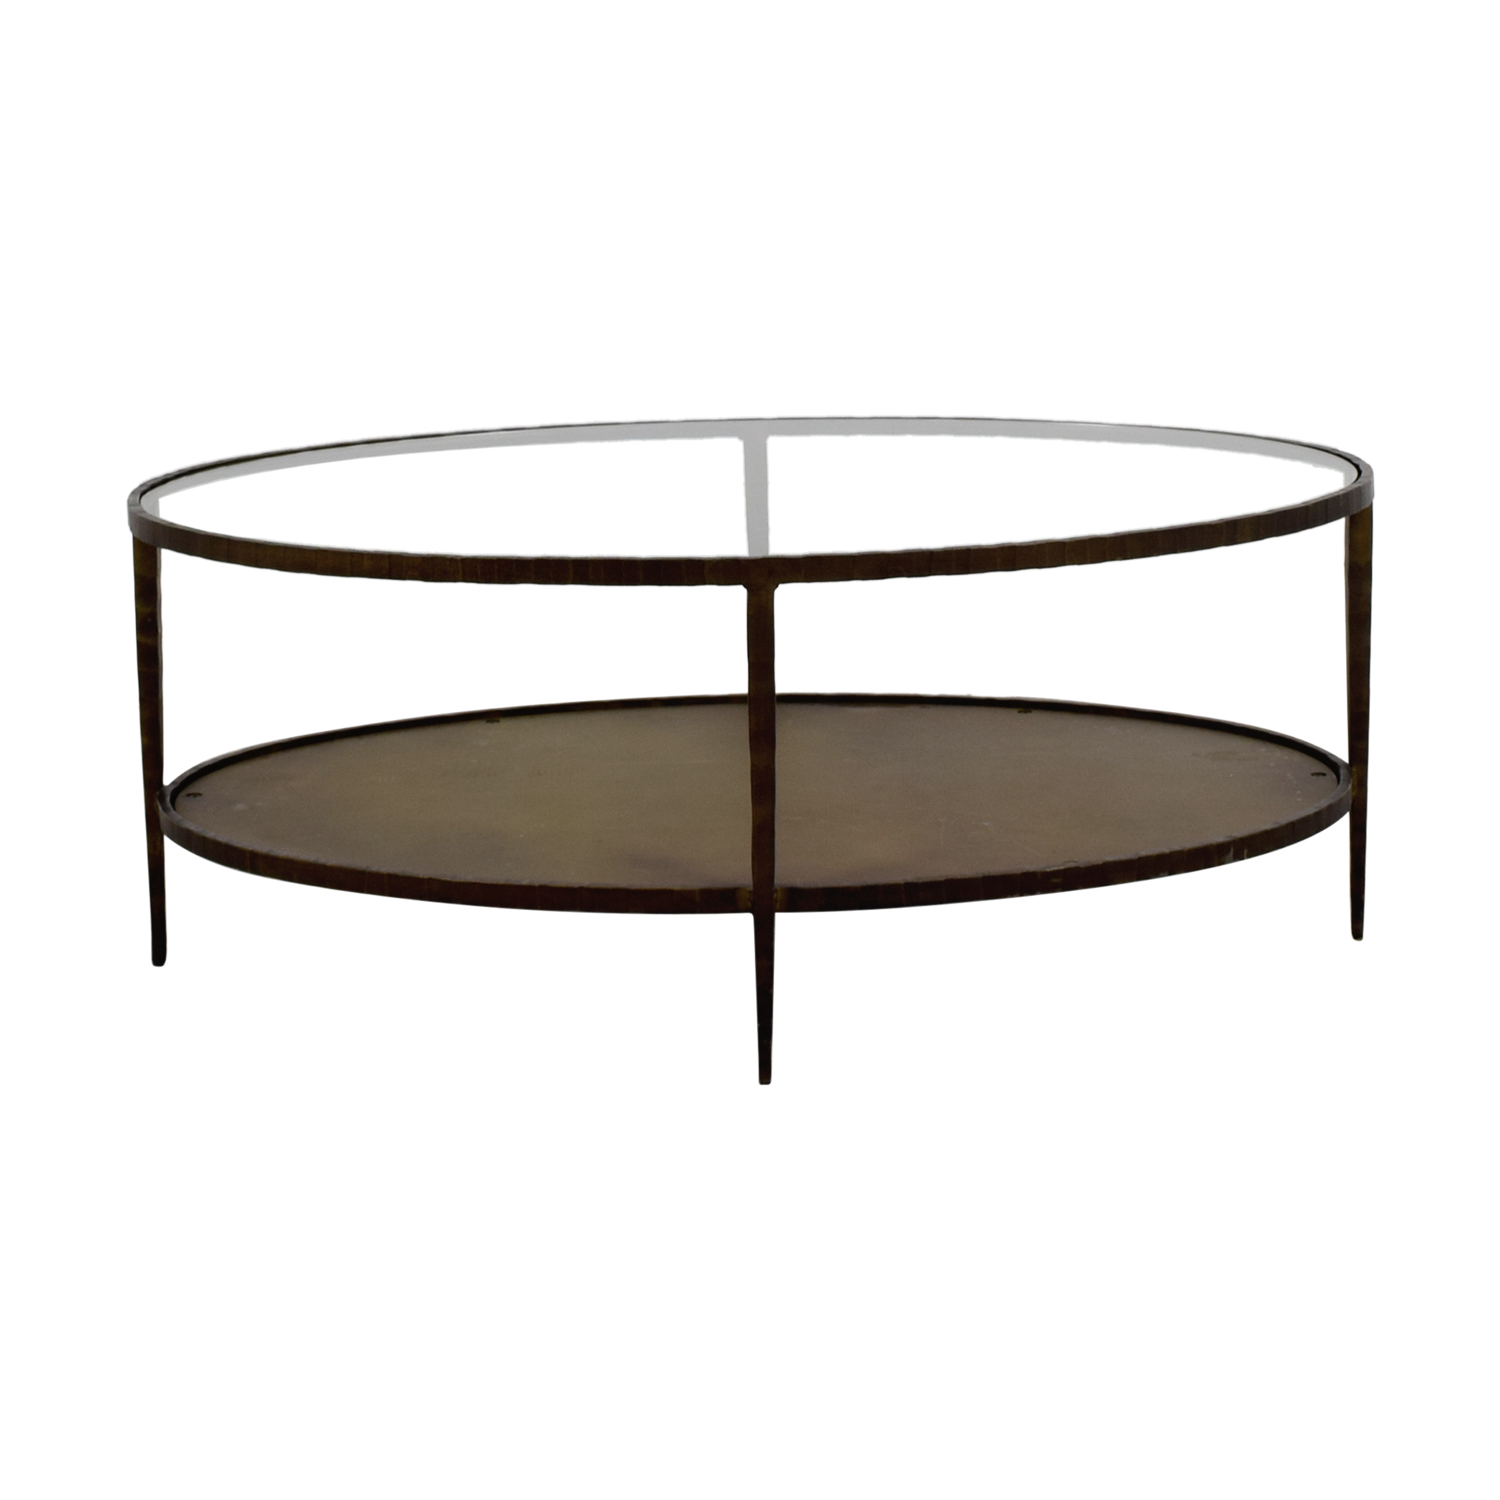 76 Off Crate Barrel Clairemont Oval Coffee Table Tables